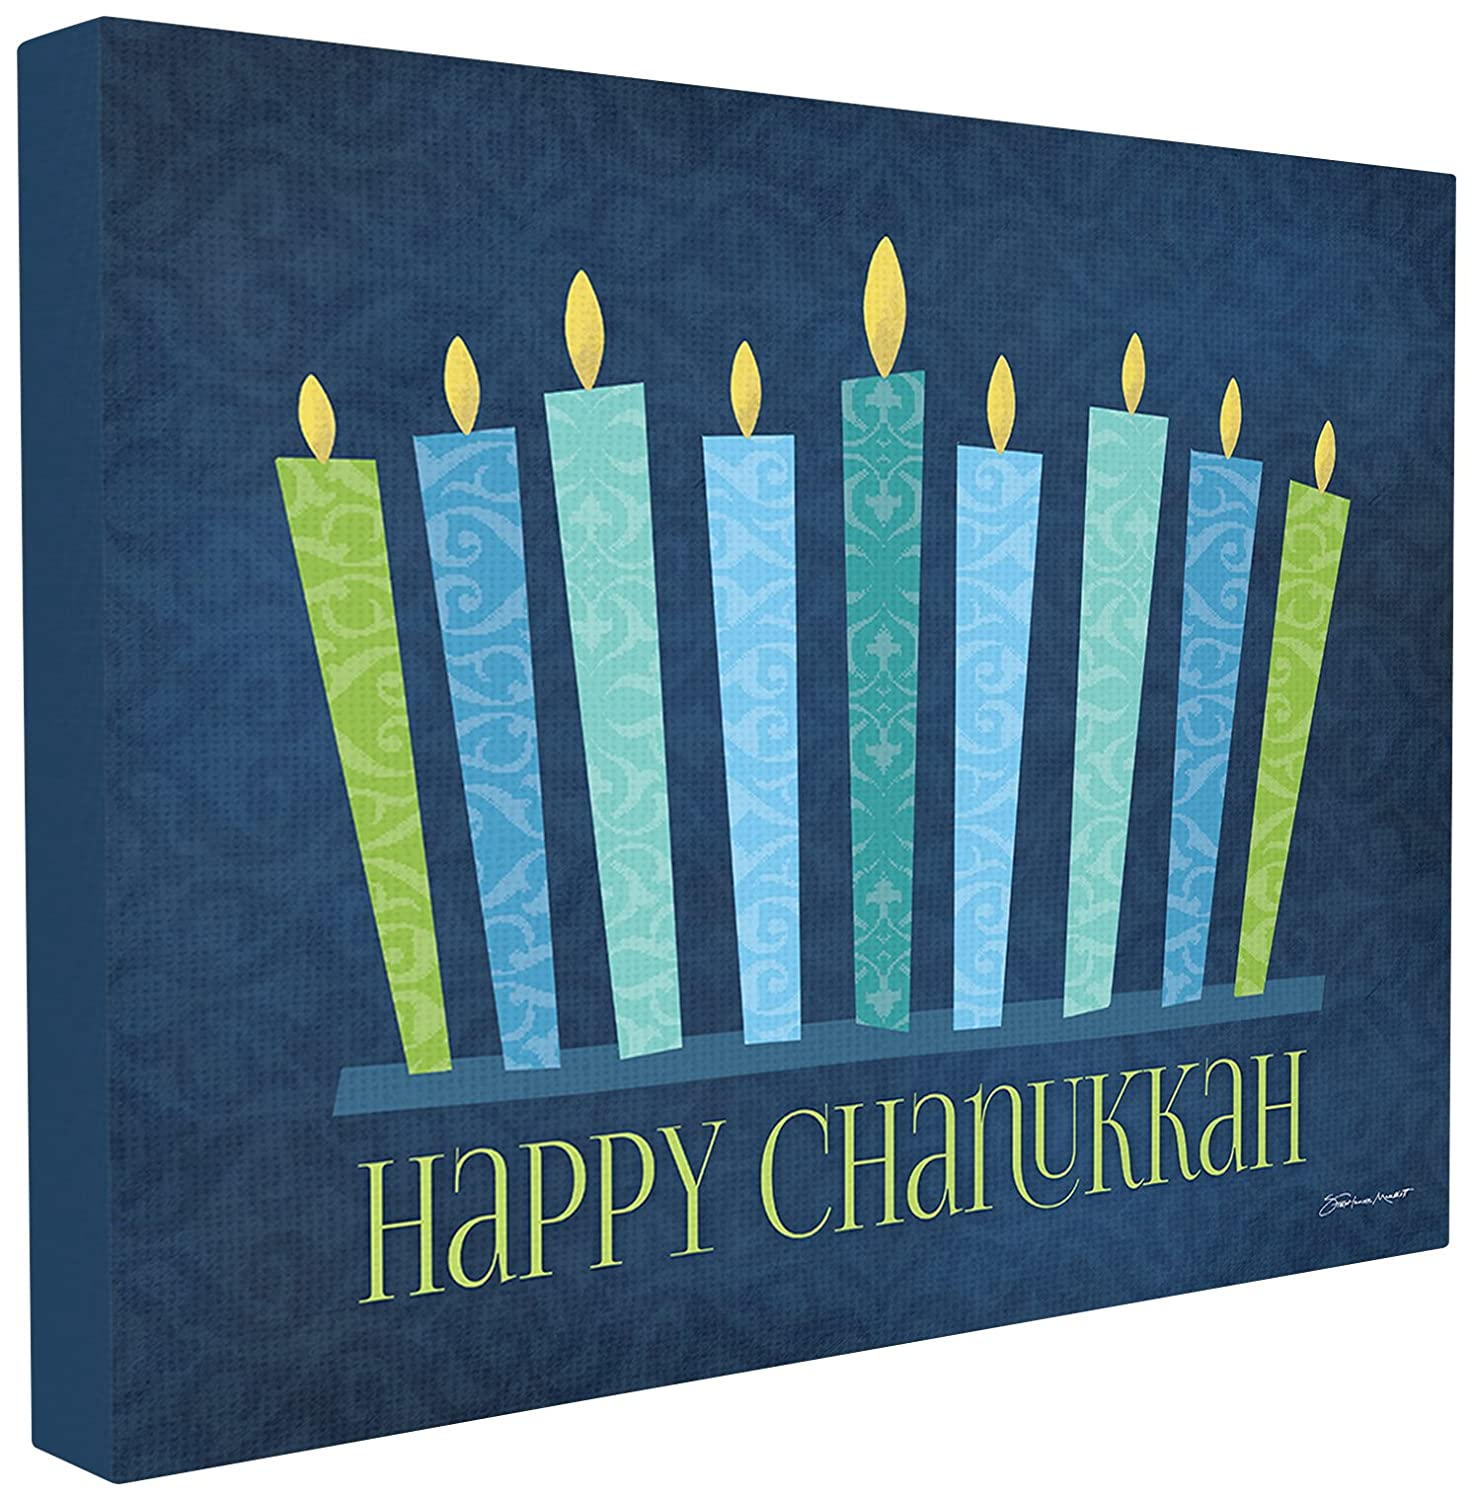 Stupell Home Décor Happy Chanukkah With Menorah Stretched Canvas Wall Art, 16 x 1.5 x 20, Proudly Made in USA Stupell Home Décor Collection hwp-118_cn_16x20